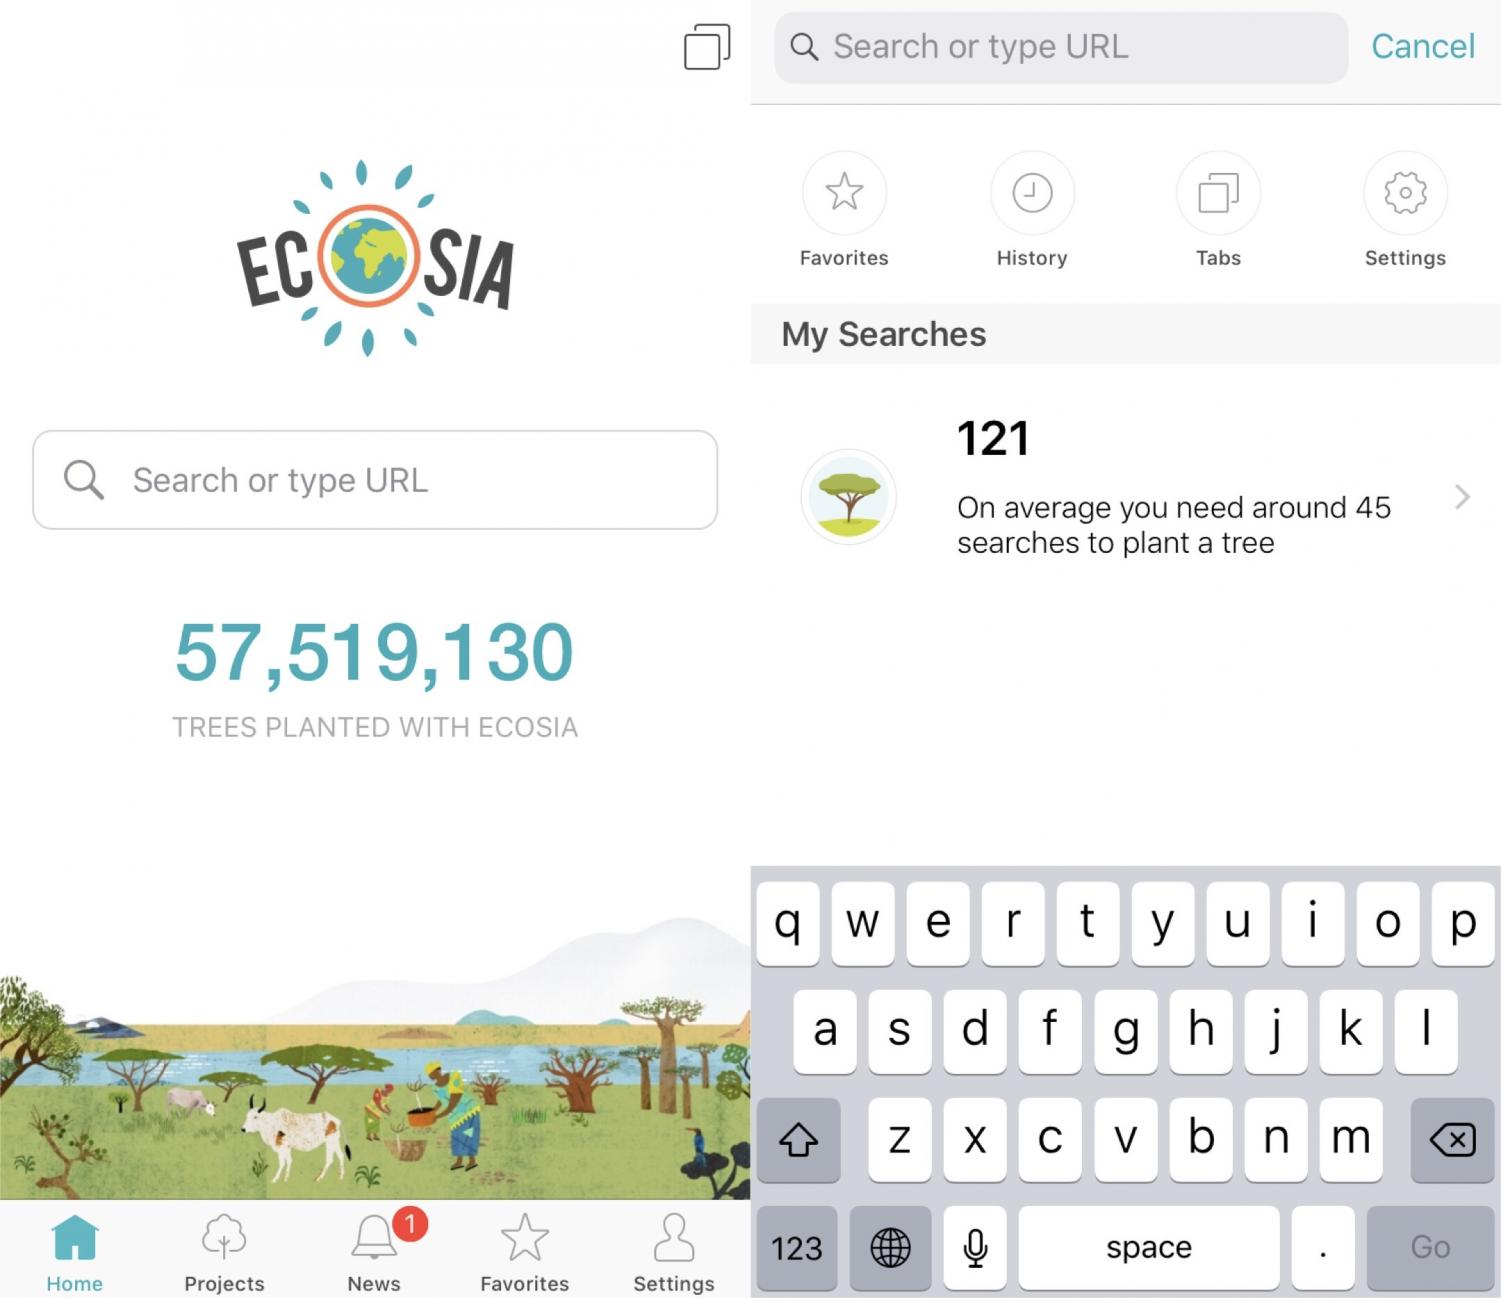 About every 45 searches results in a tree planted somewhere around the world, and Ecosia's users already have planted a combined estimate of over 57 million trees.